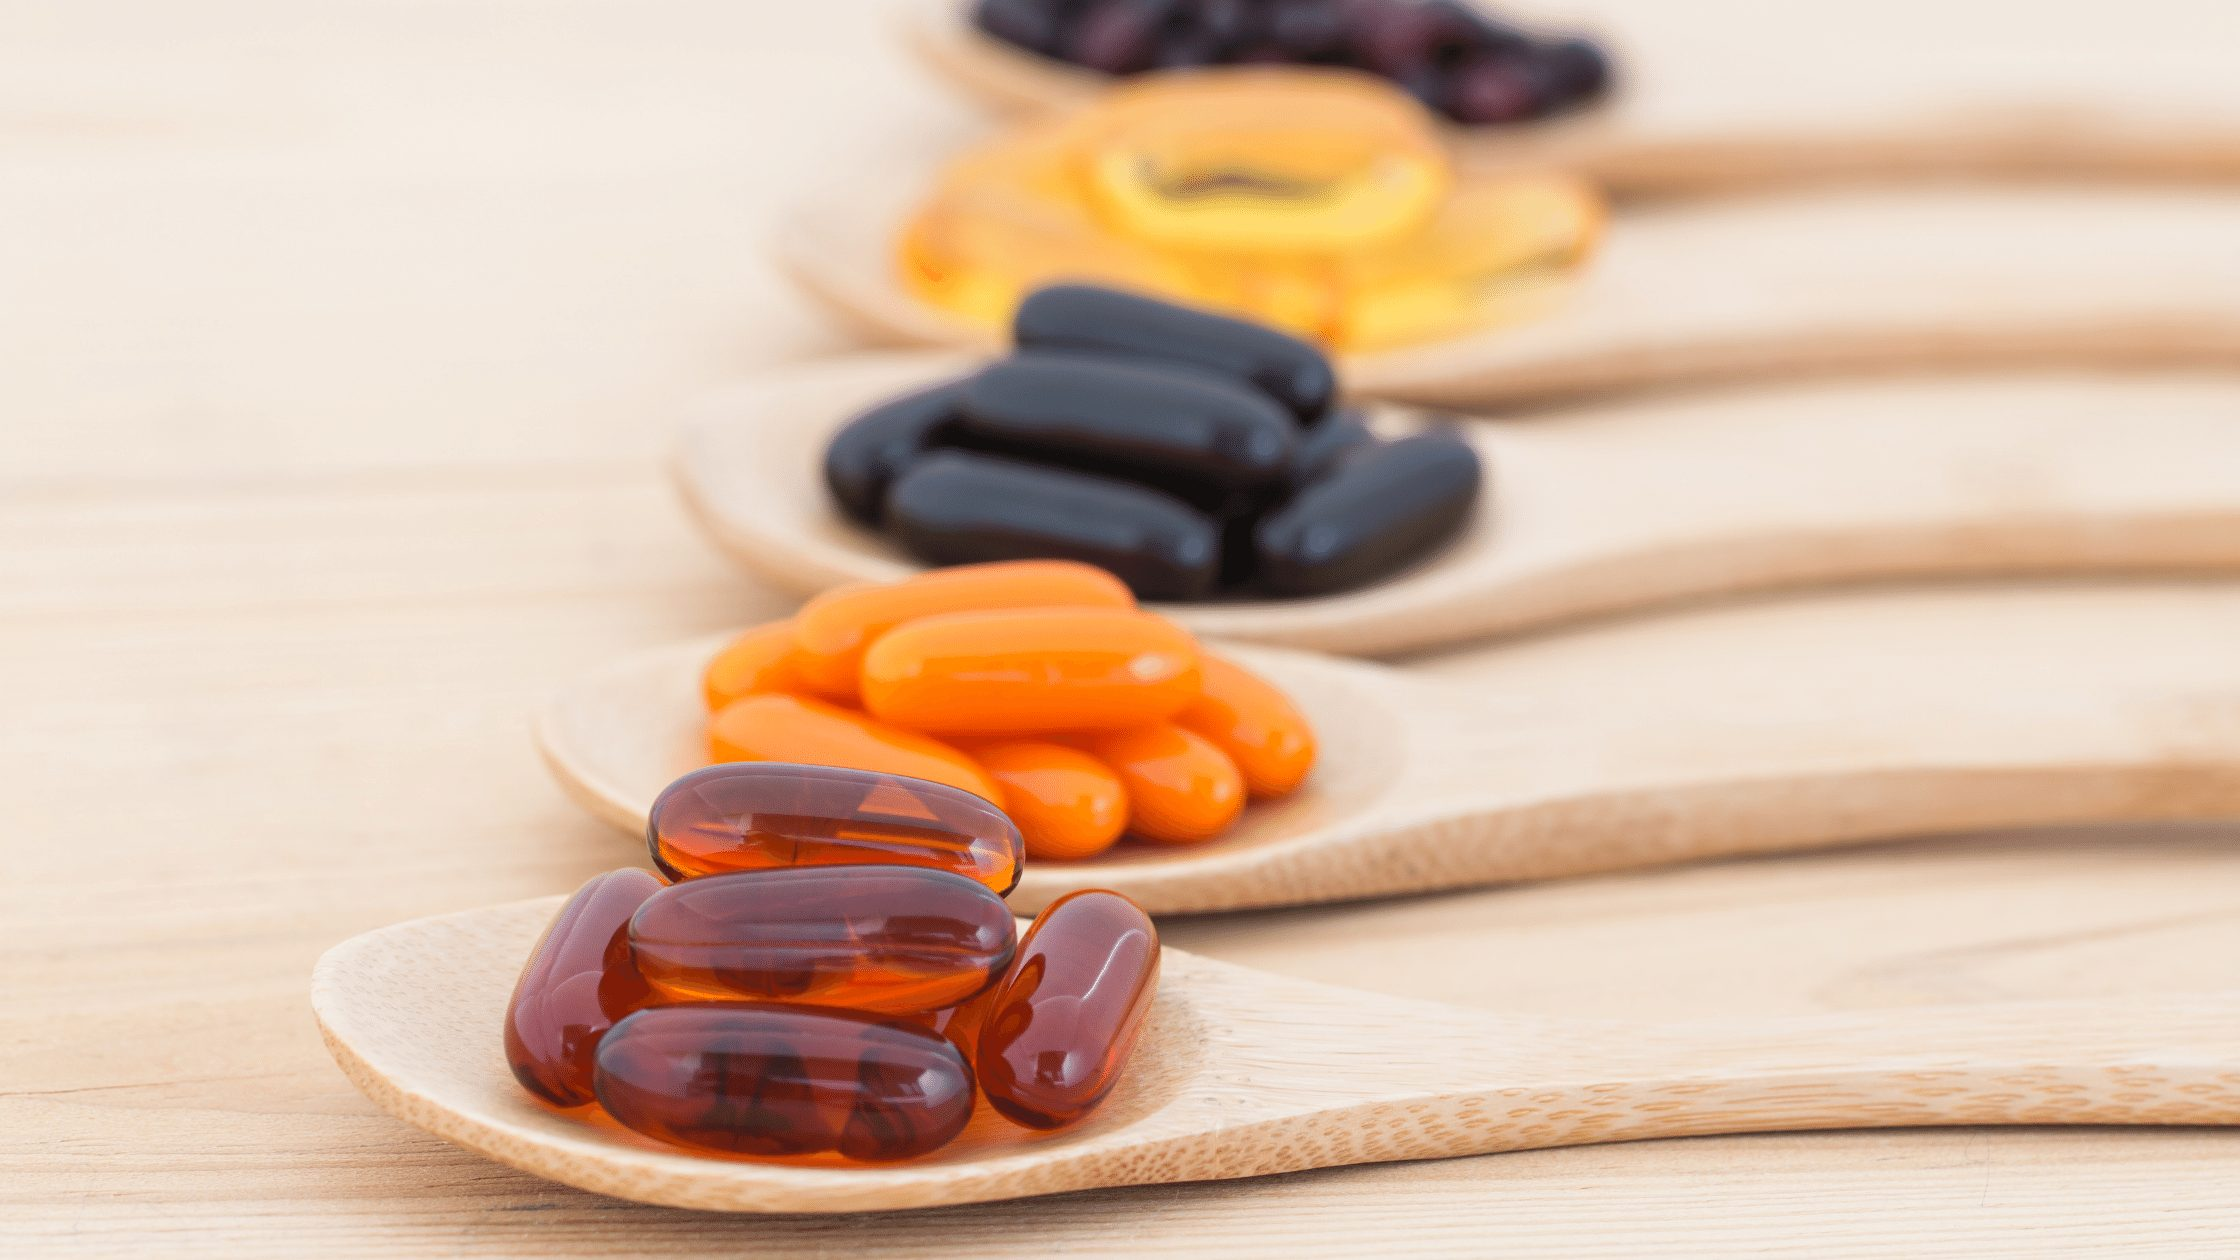 Multiple supplement pills organized on seperate wooden spoons